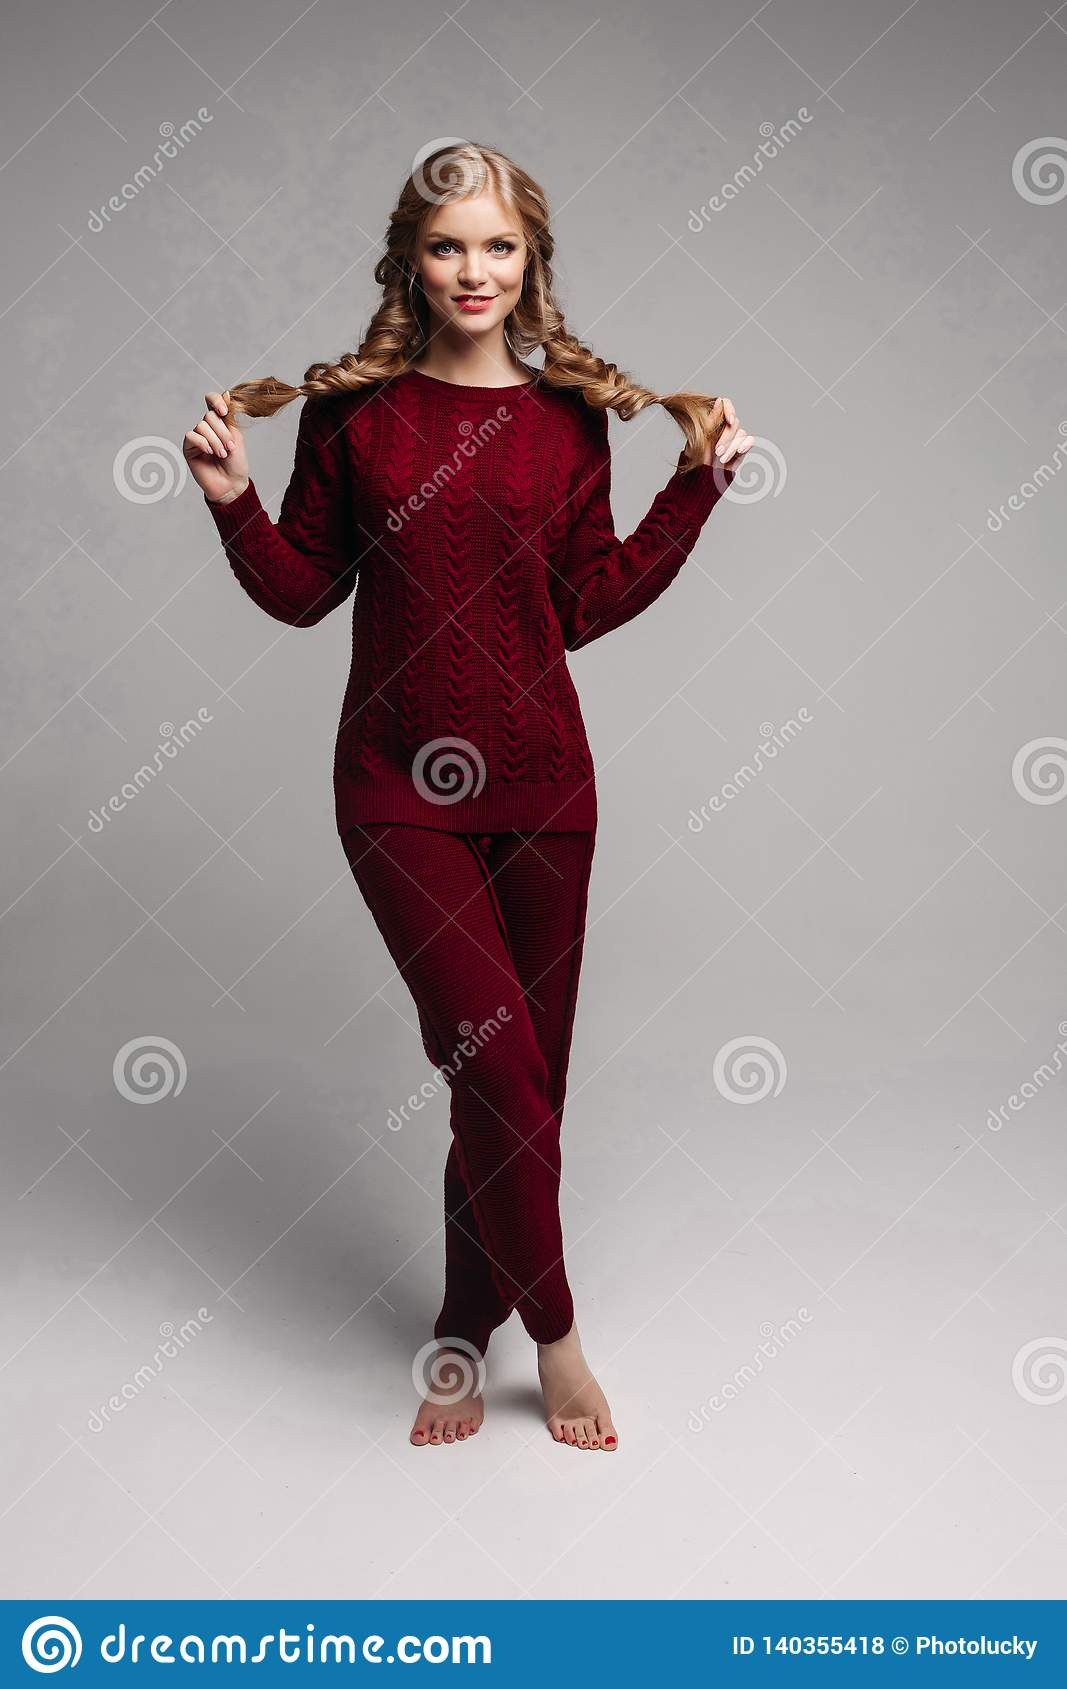 6f7b3b1e99 Young beautiful girl in bordo sweater and pants posing at camera. Amazing blonde  lady holding her braids and standing on toes with pedicure.